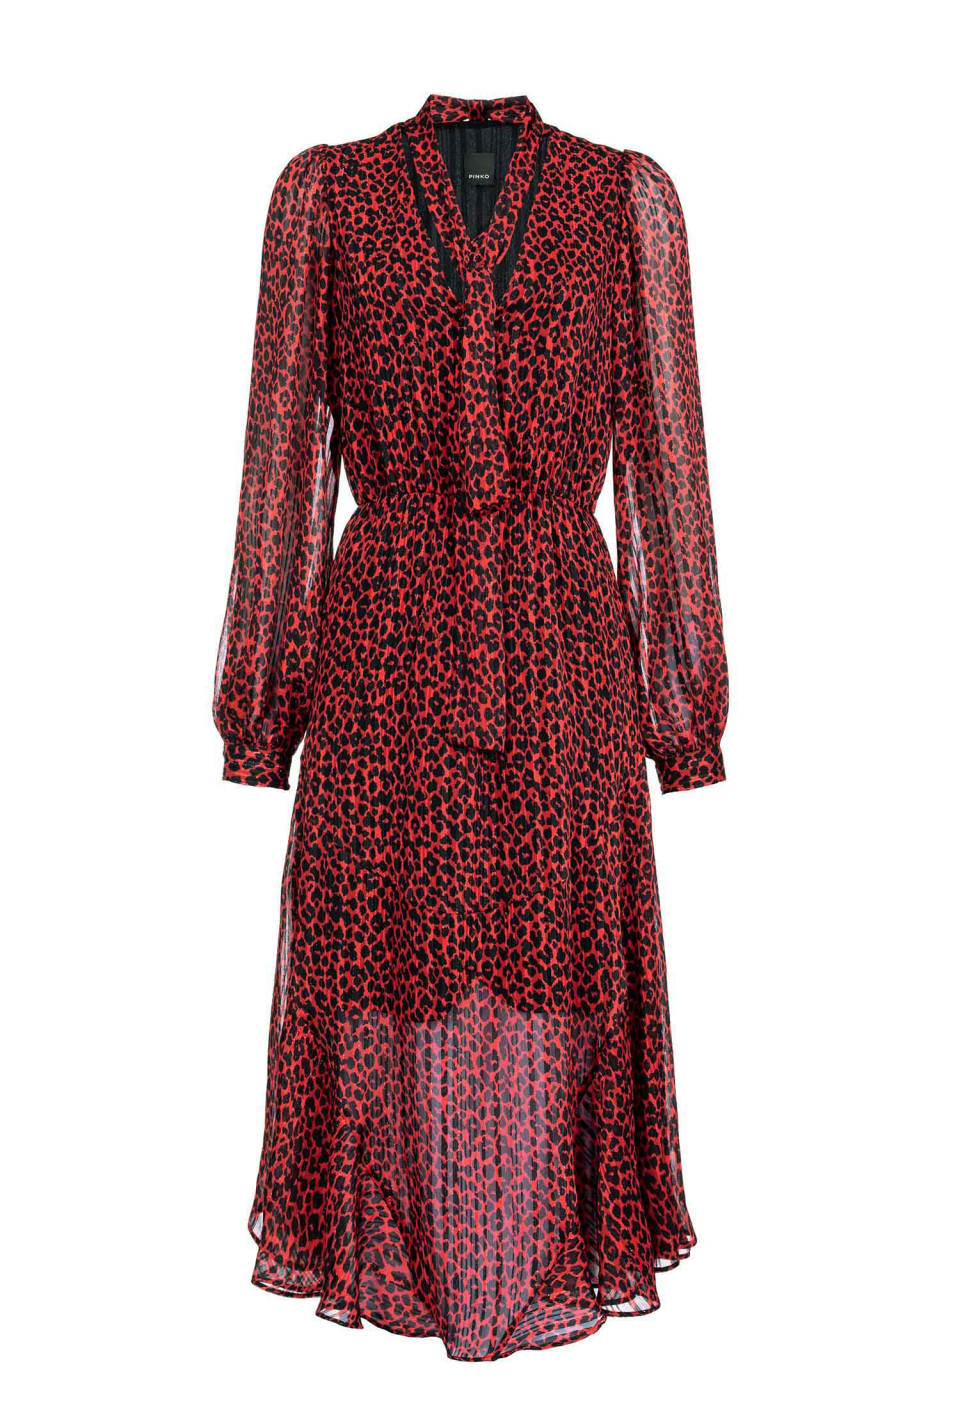 Red animal pattern jacquard dress